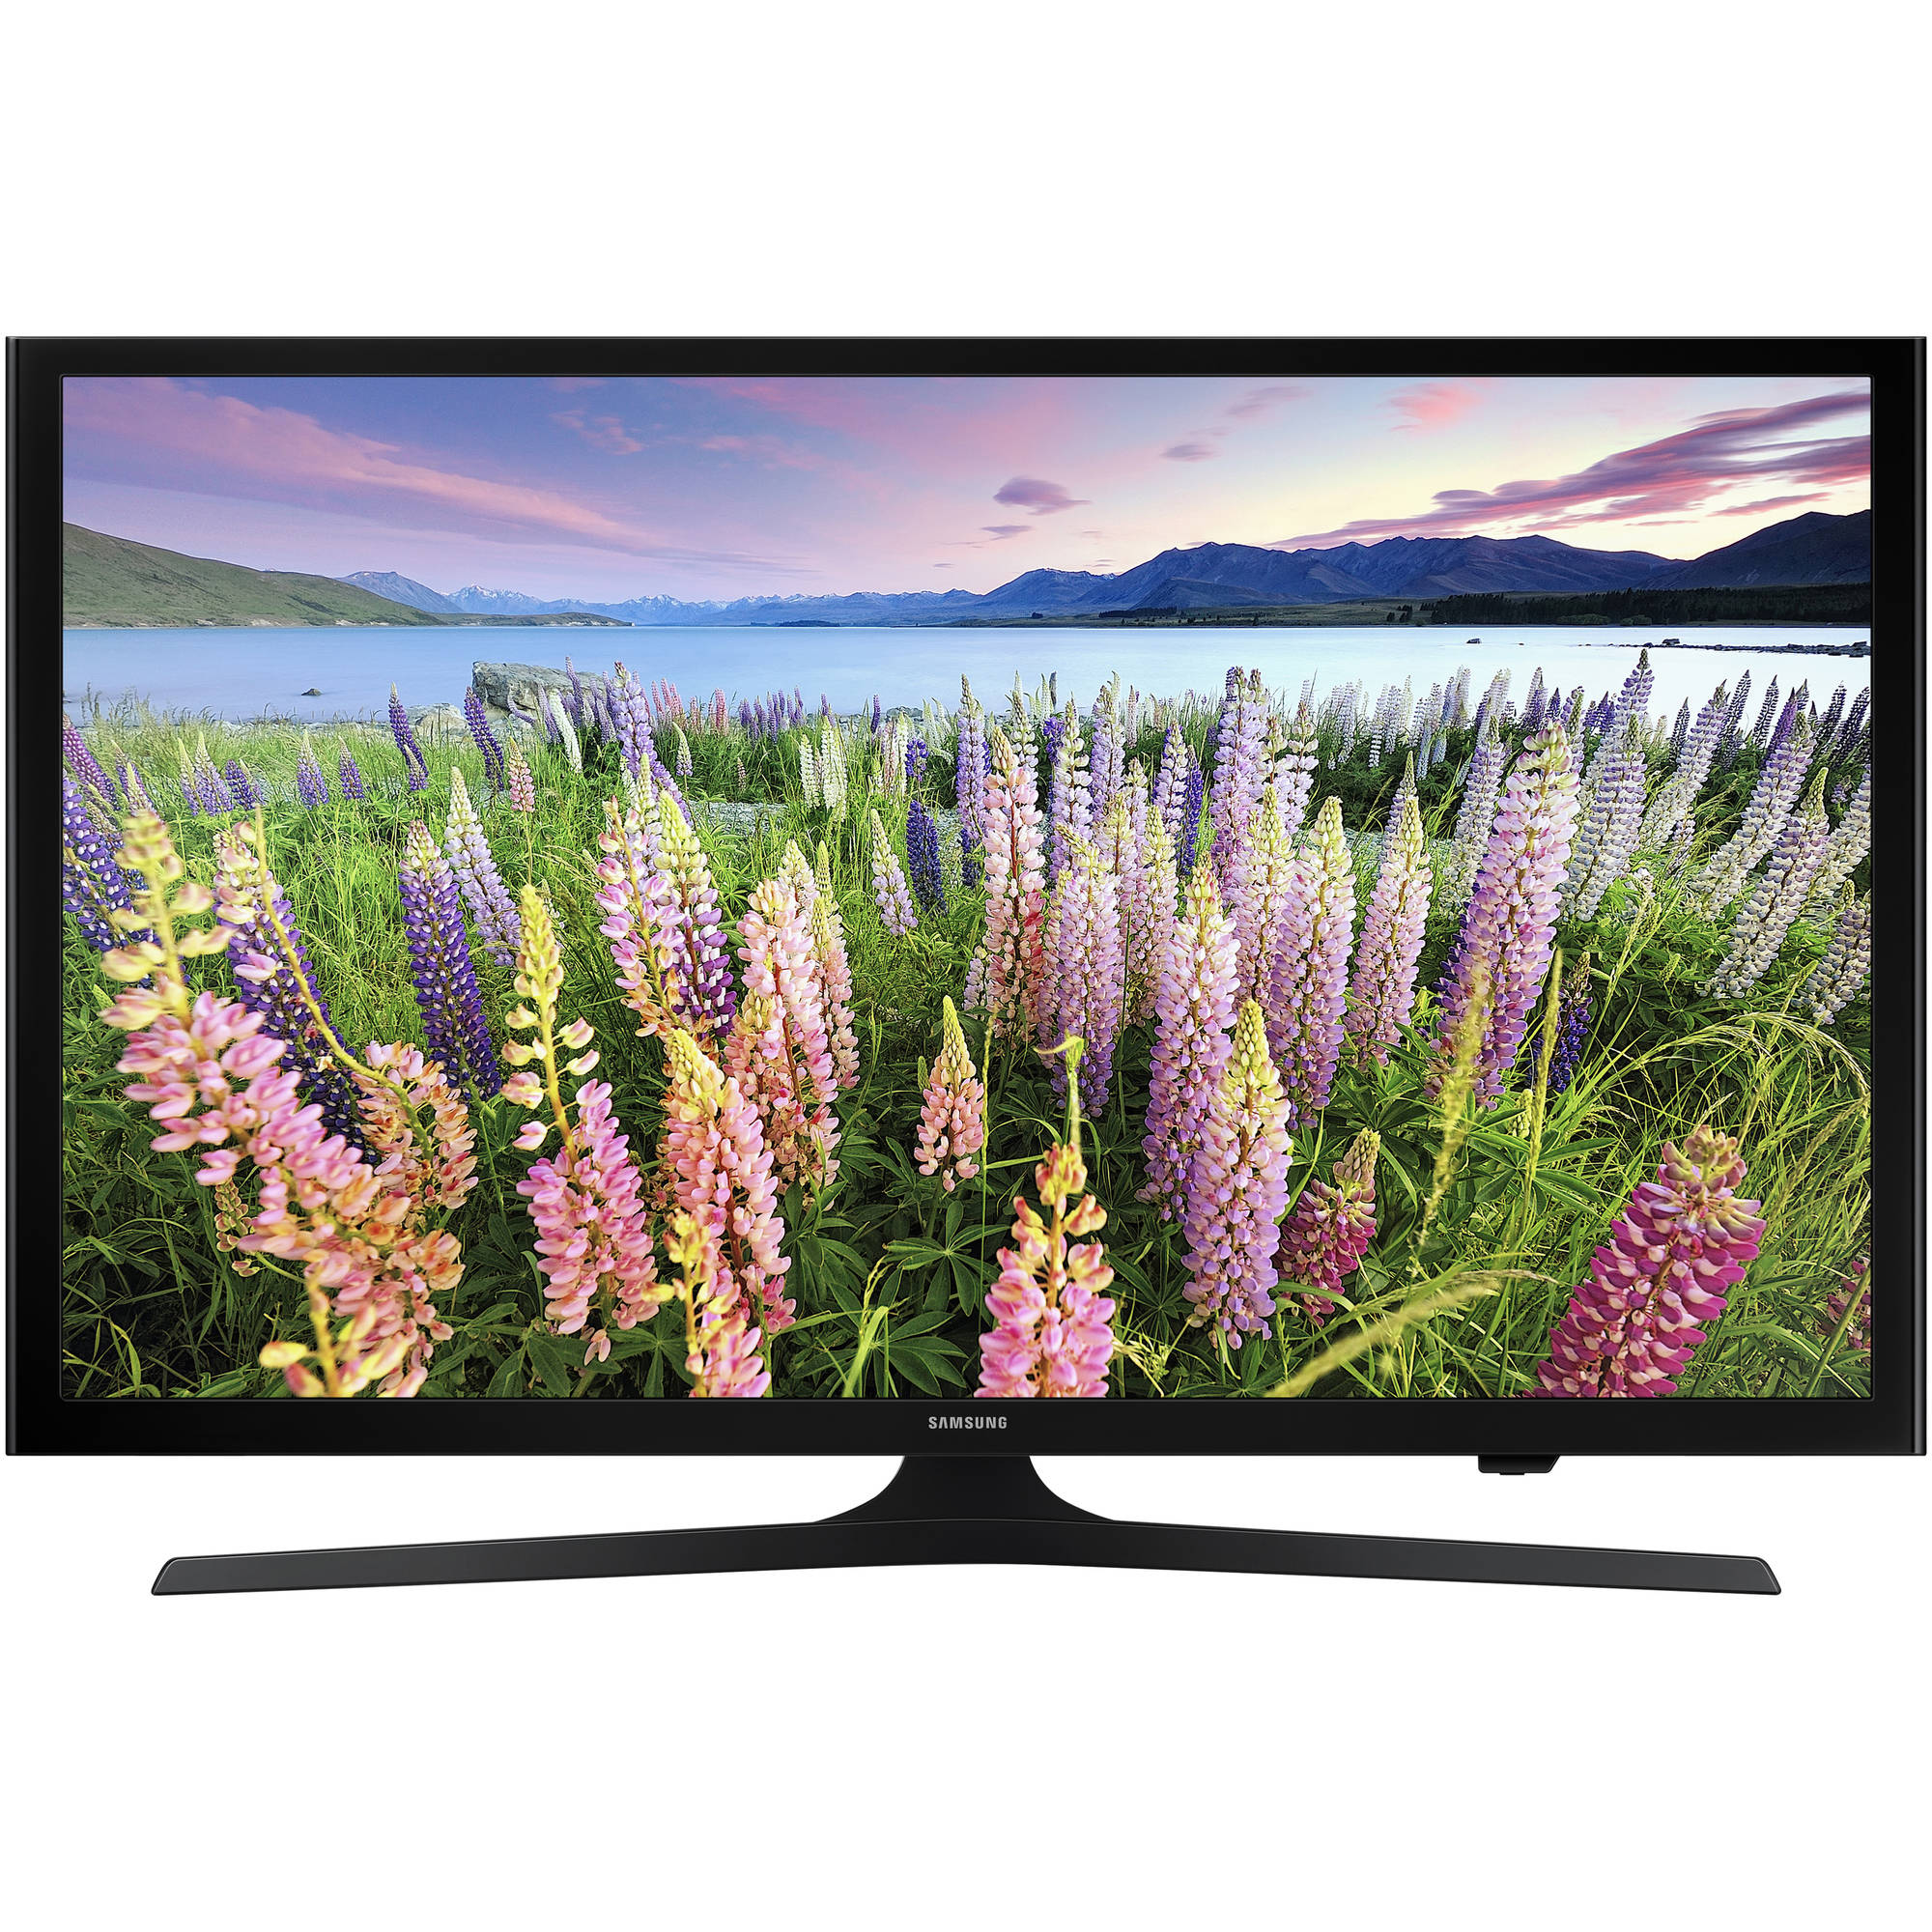 "SAMSUNG 48"" 5000 Series - HD LED TV - 1080p, 60MR (Model#: UN48J5000)"